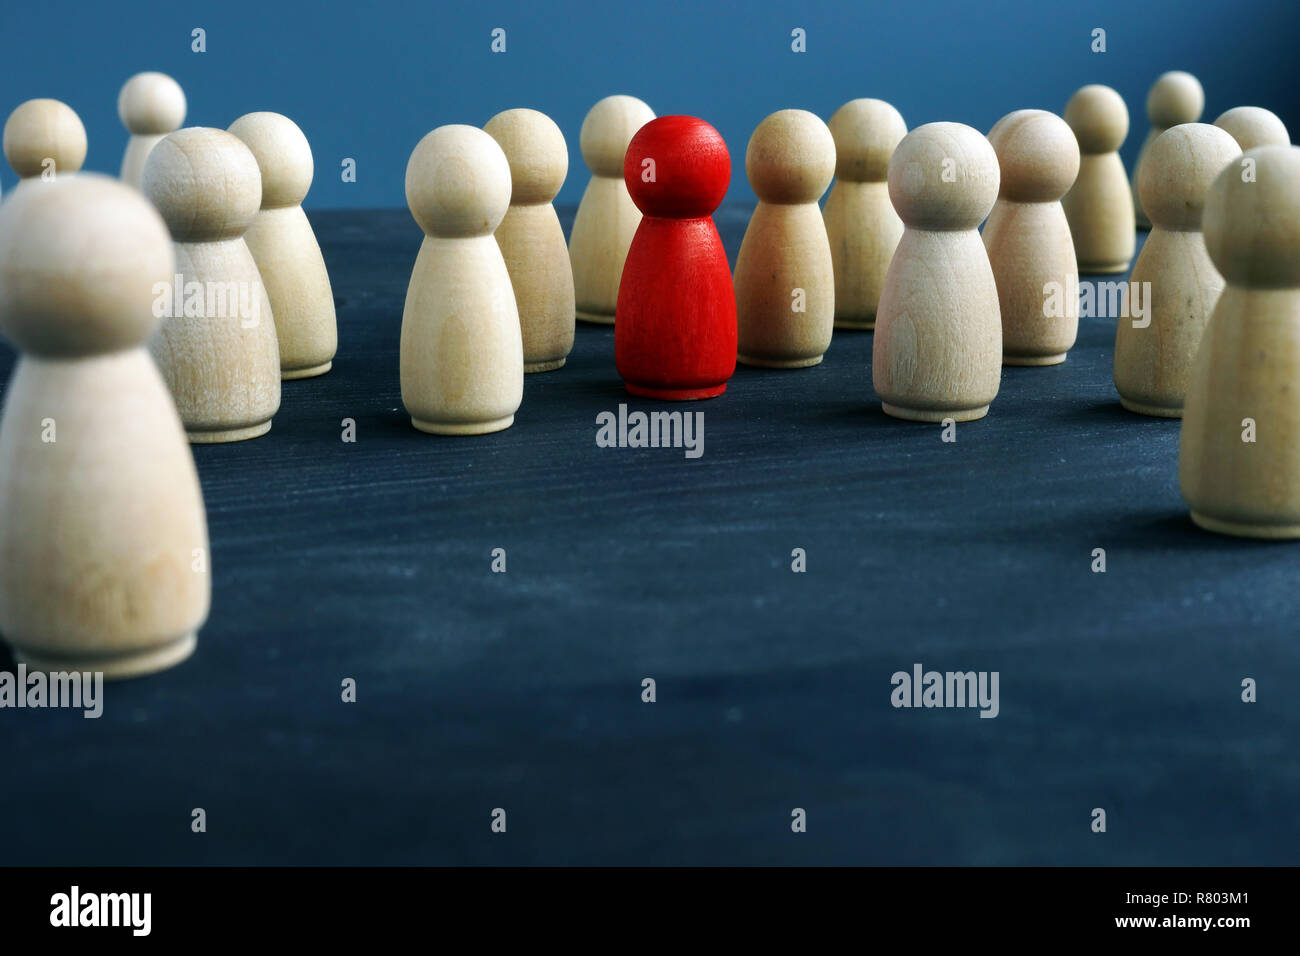 Wooden figures and one red figure. Be different. Stand out from the crowd. Stock Photo